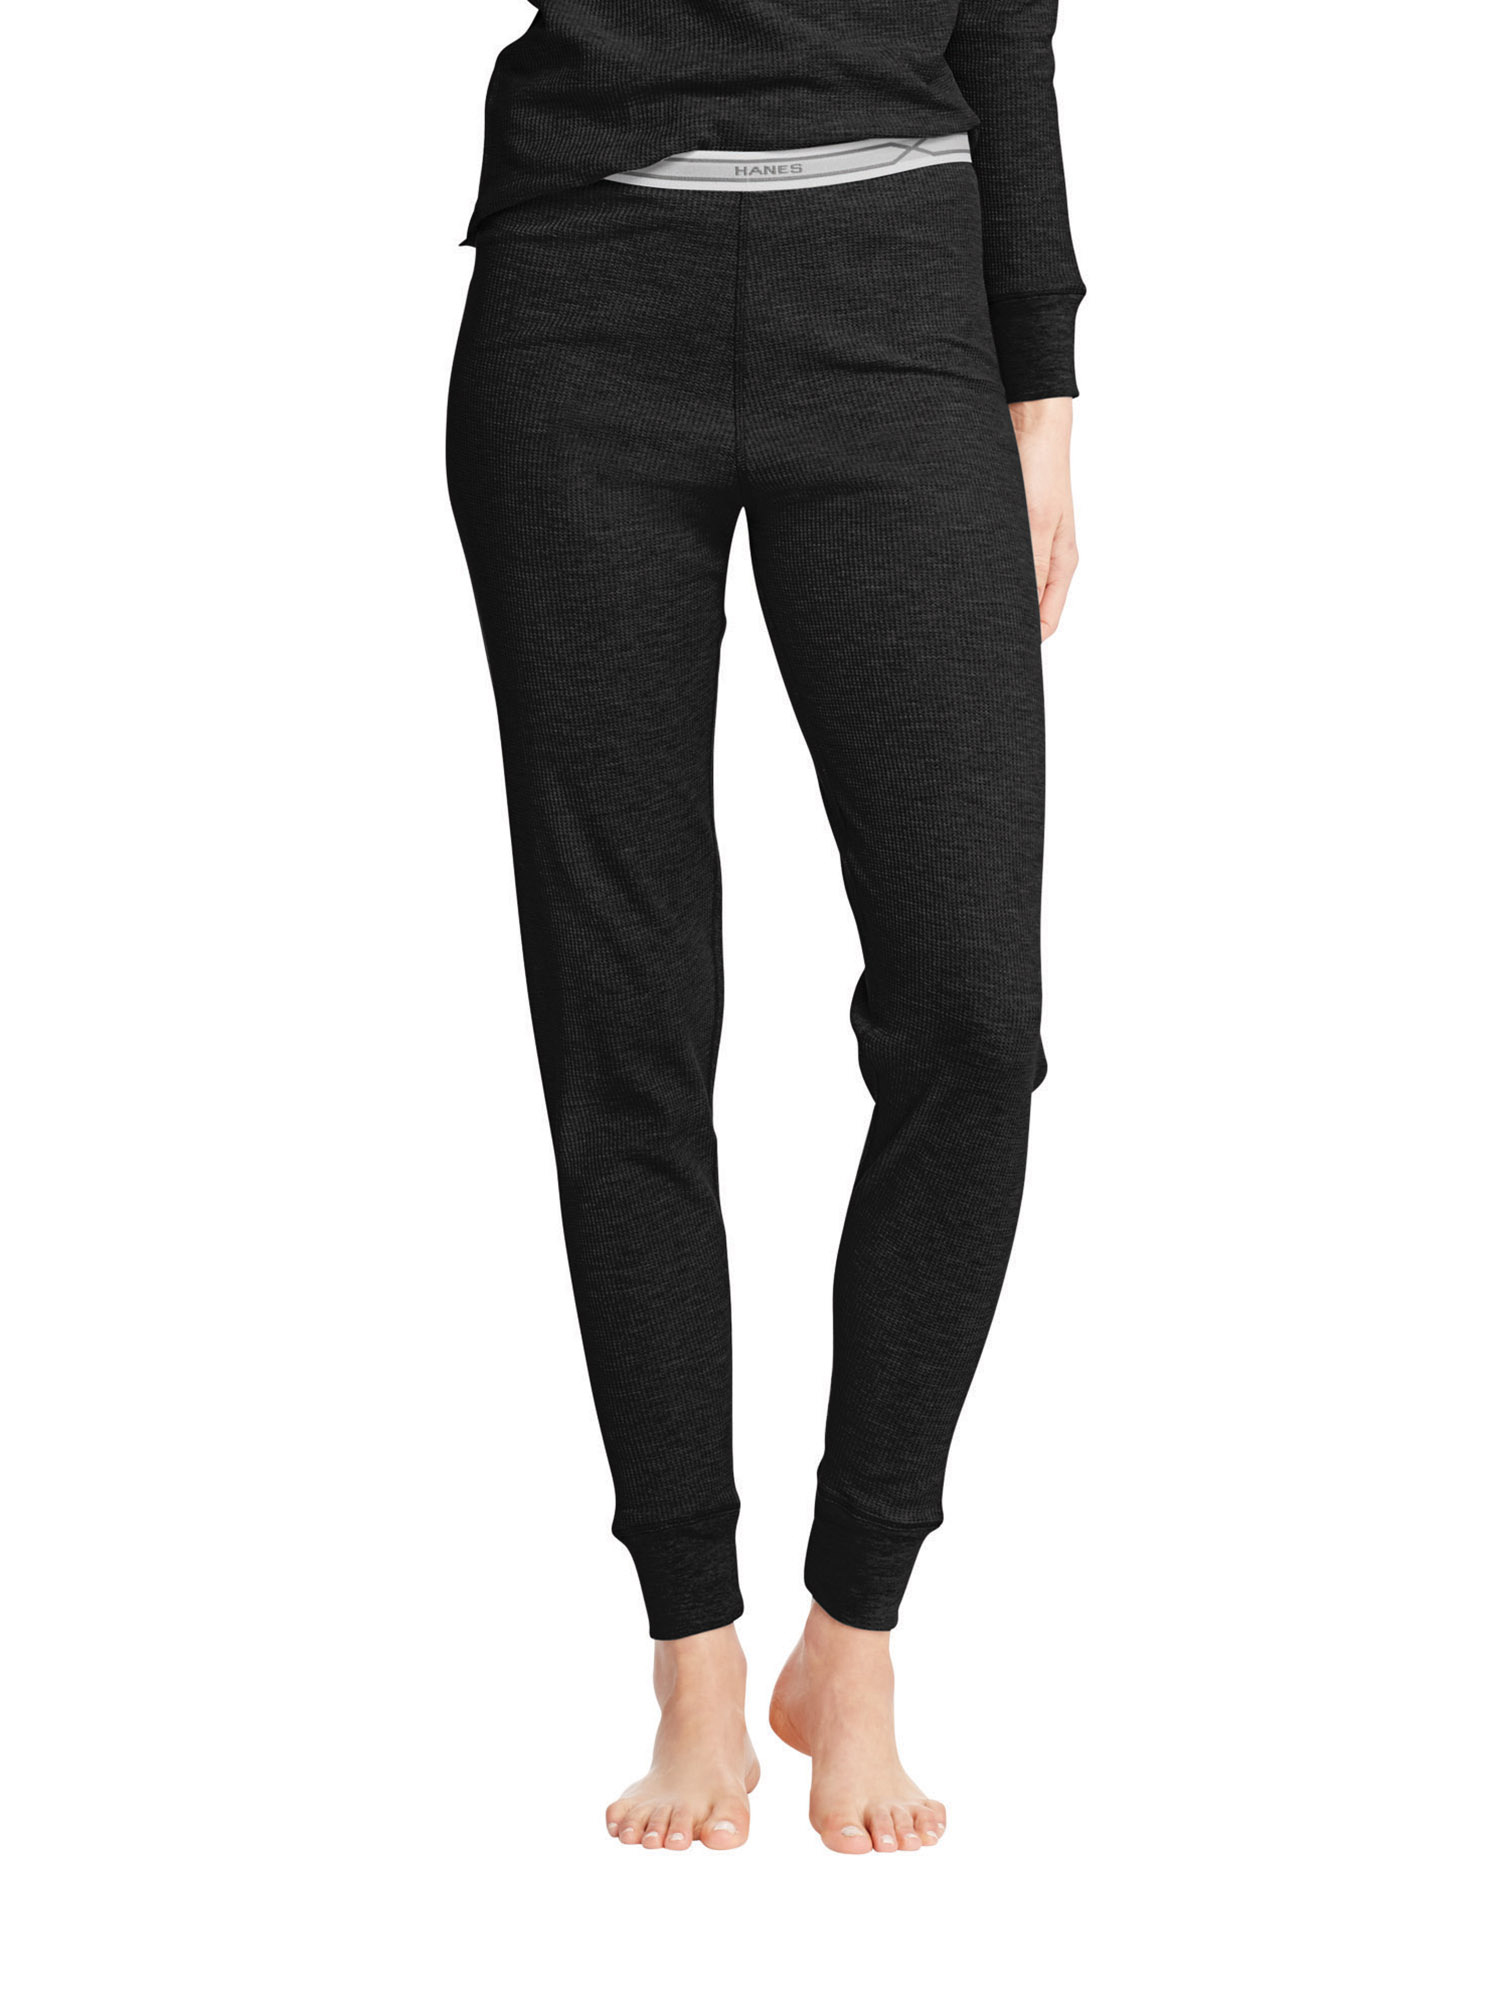 Women's X-Temp Thermal Underwear Pant by Hanes